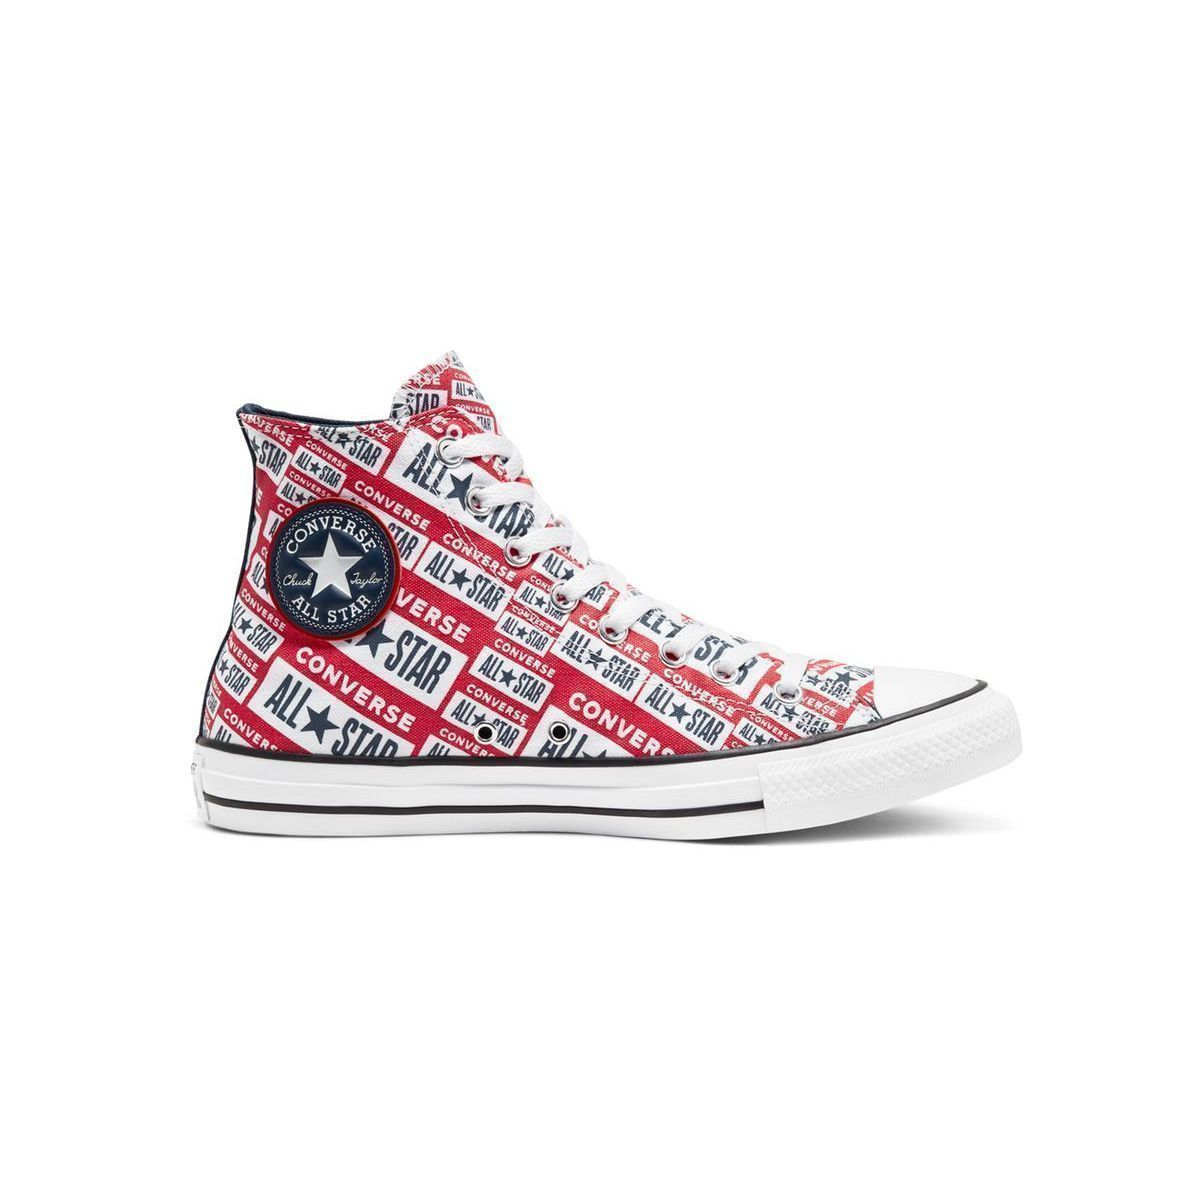 WATTLE CHUCK TAYLOR ALL STAR:ROUGE/TEXTILE/TEXTILE/CAOUTCHOUC/Rouge